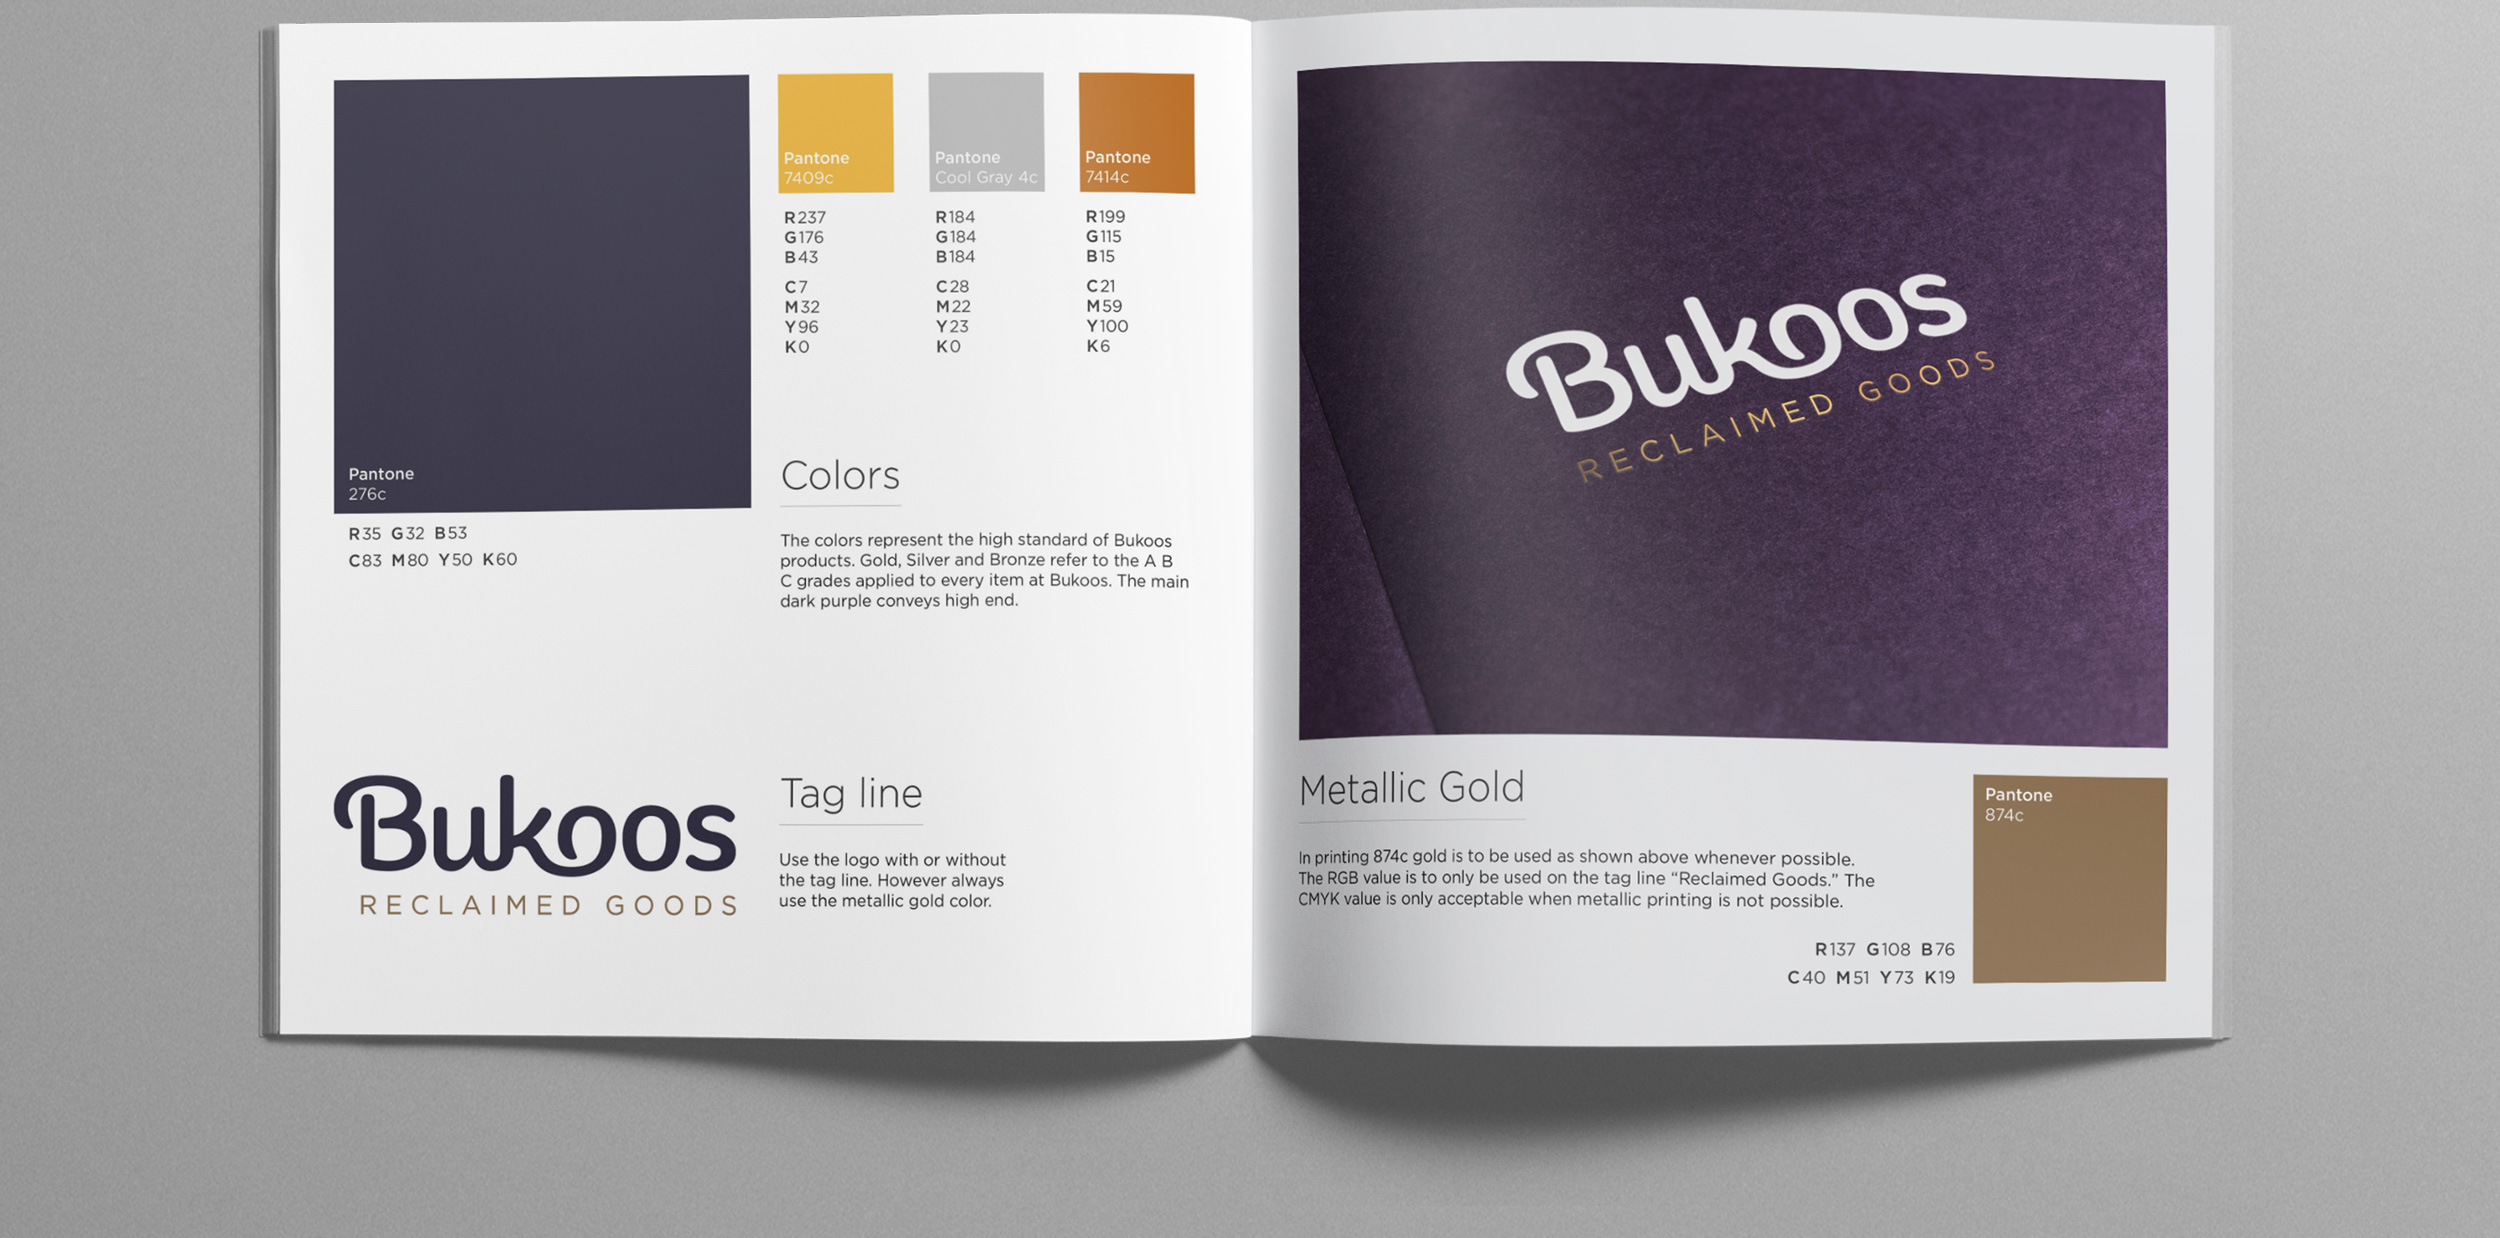 Style guide design for Bukoos